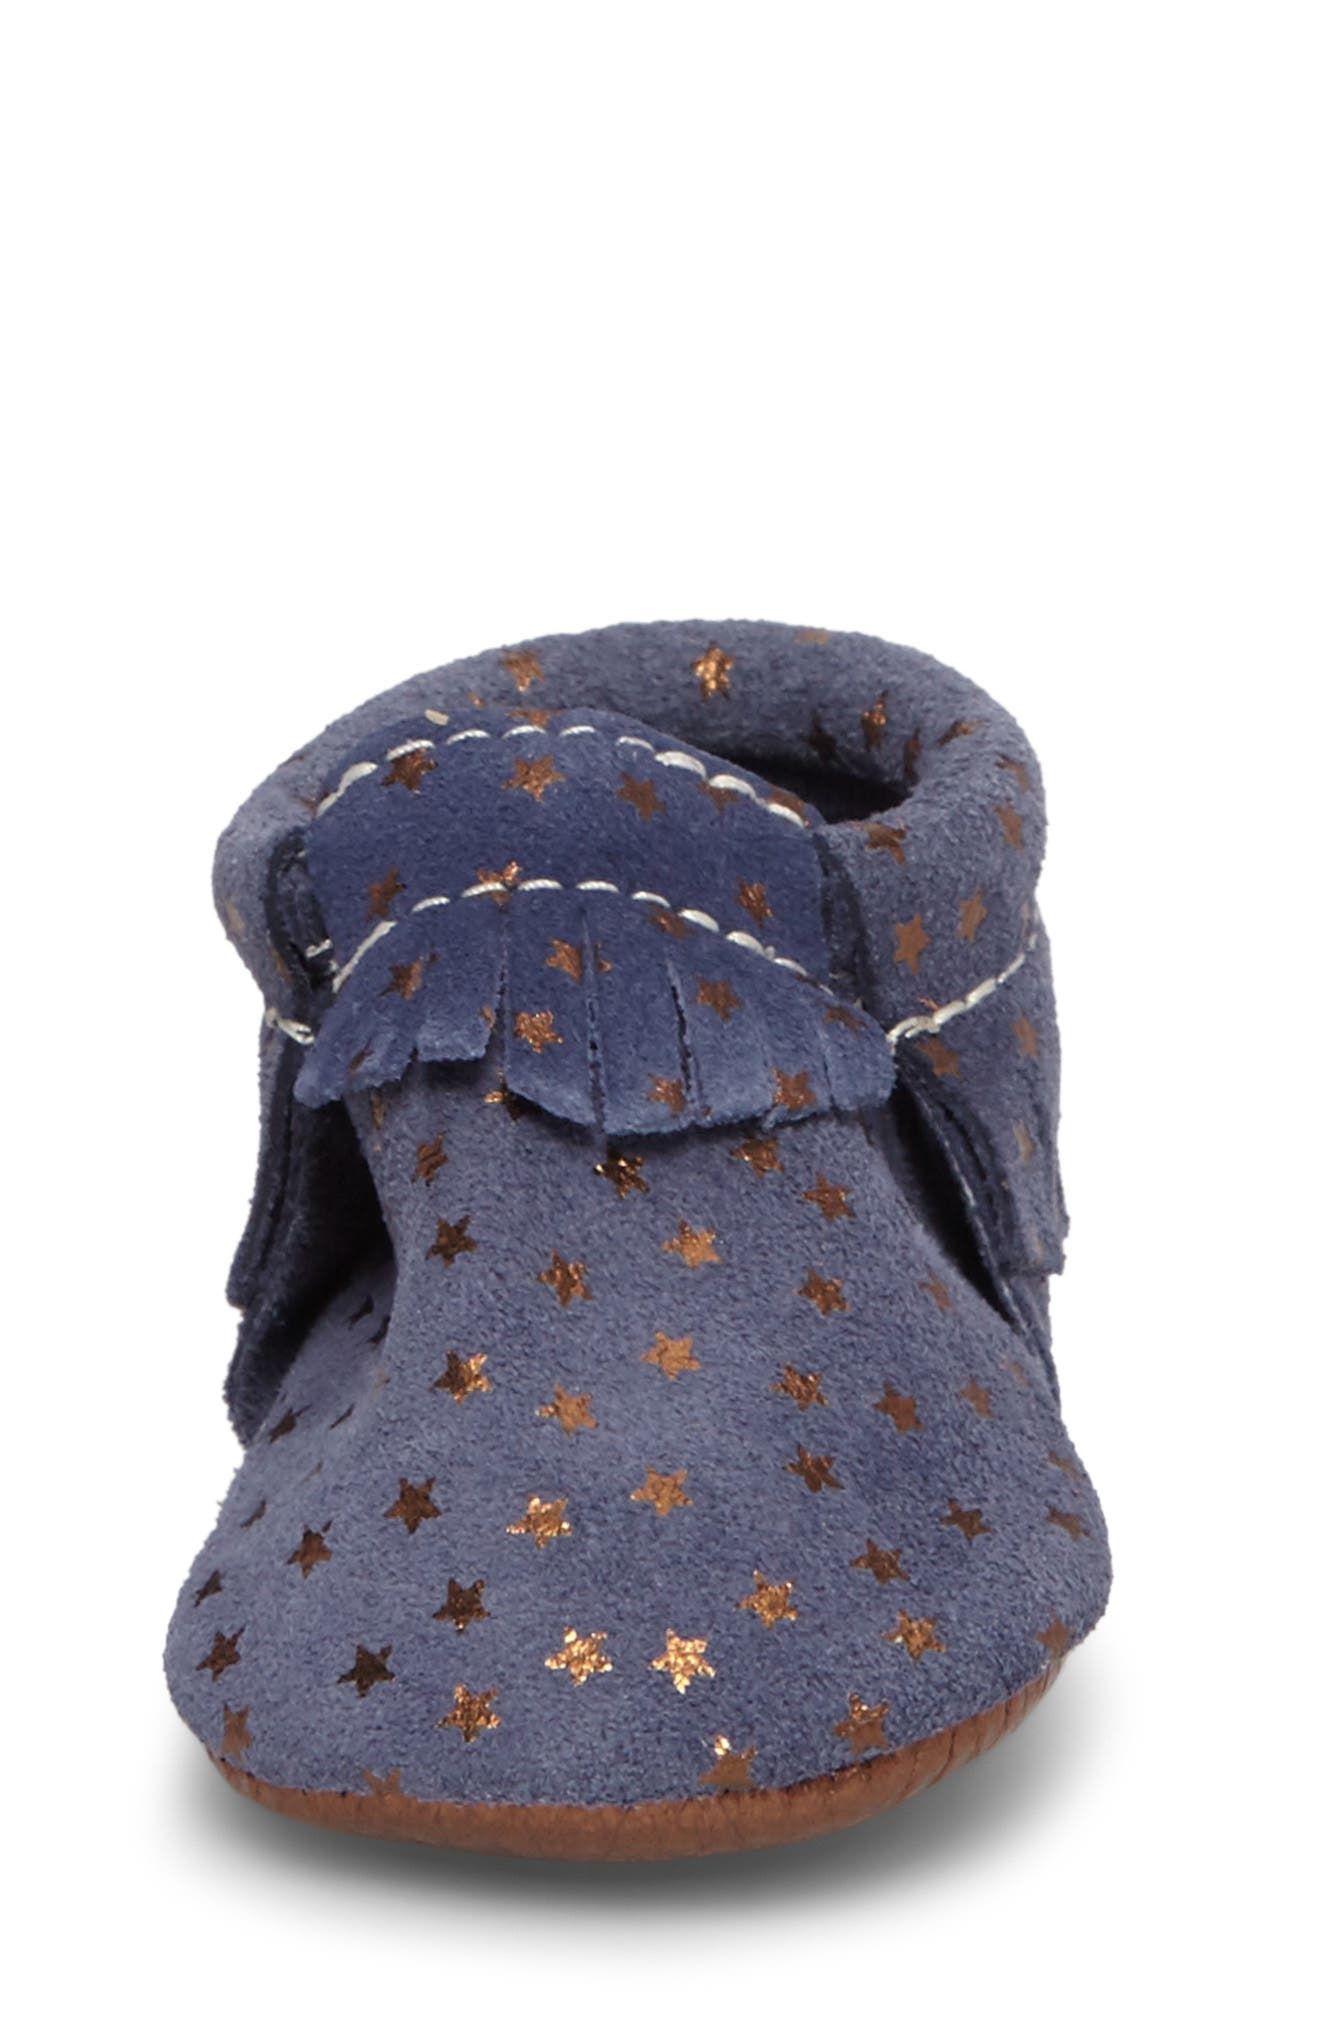 Starry Sky Moccasin,                             Alternate thumbnail 4, color,                             400